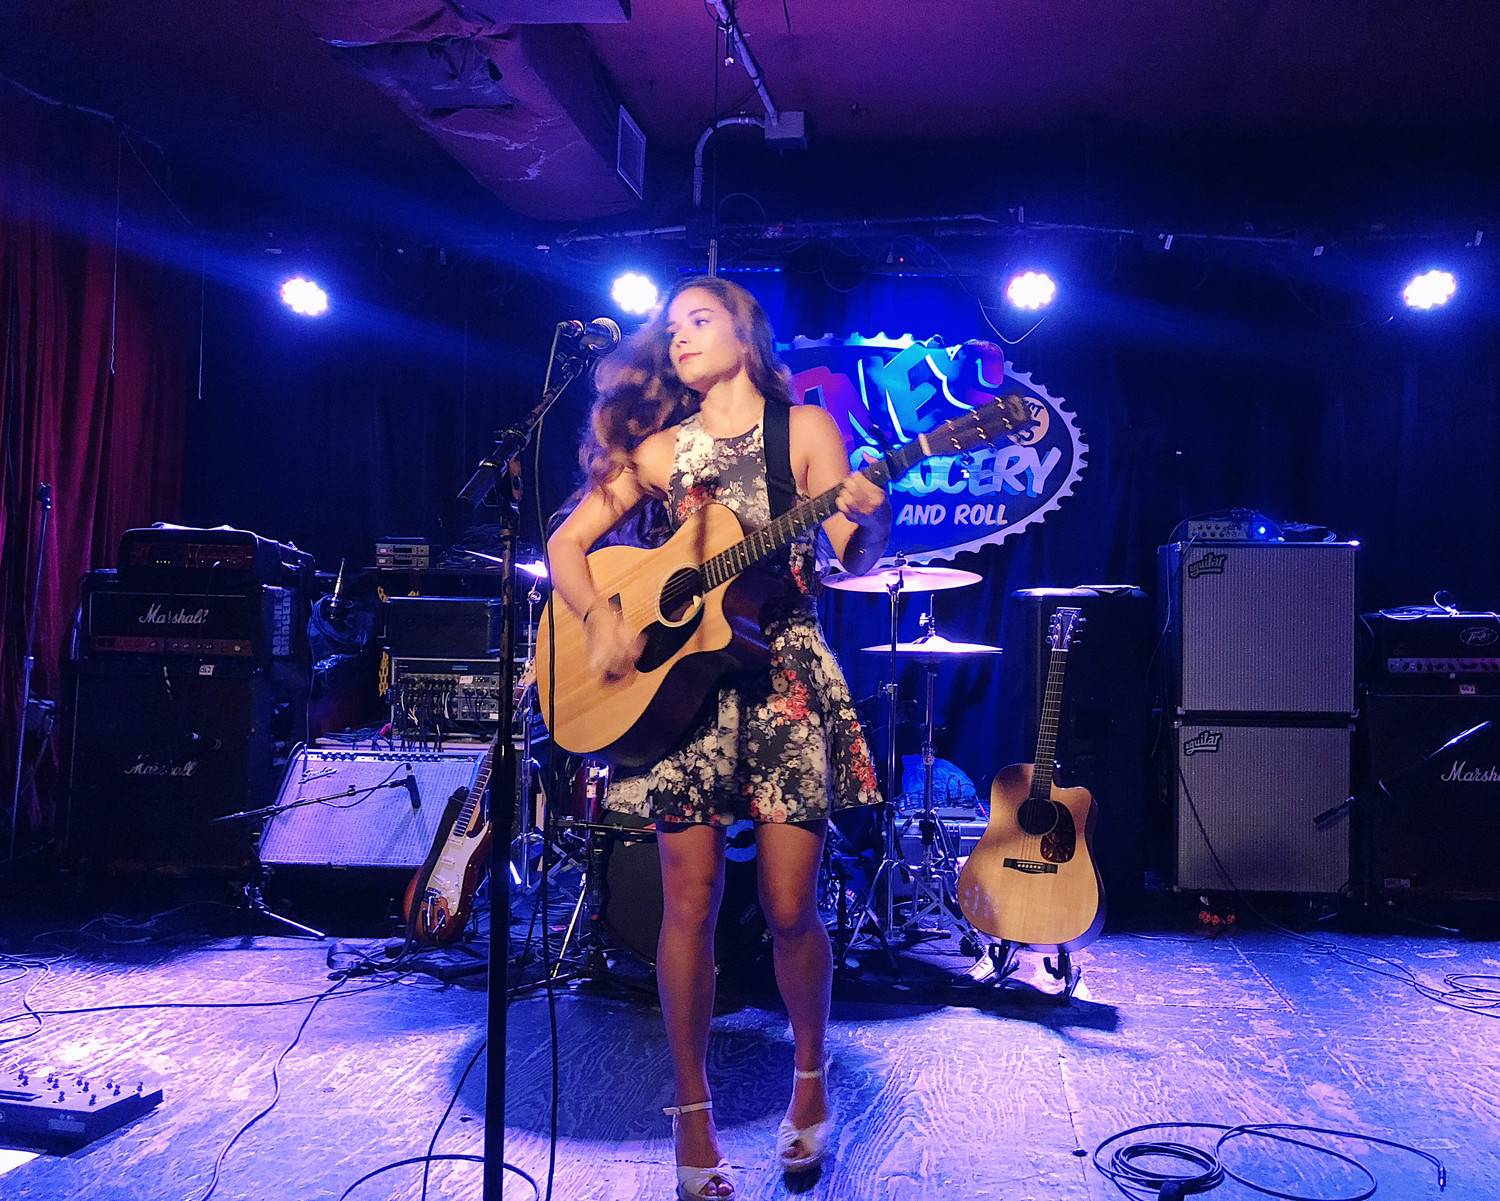 Oyster Bay native Kiera Stella is singing and songwriting her way through Nashville to break into the music industry.